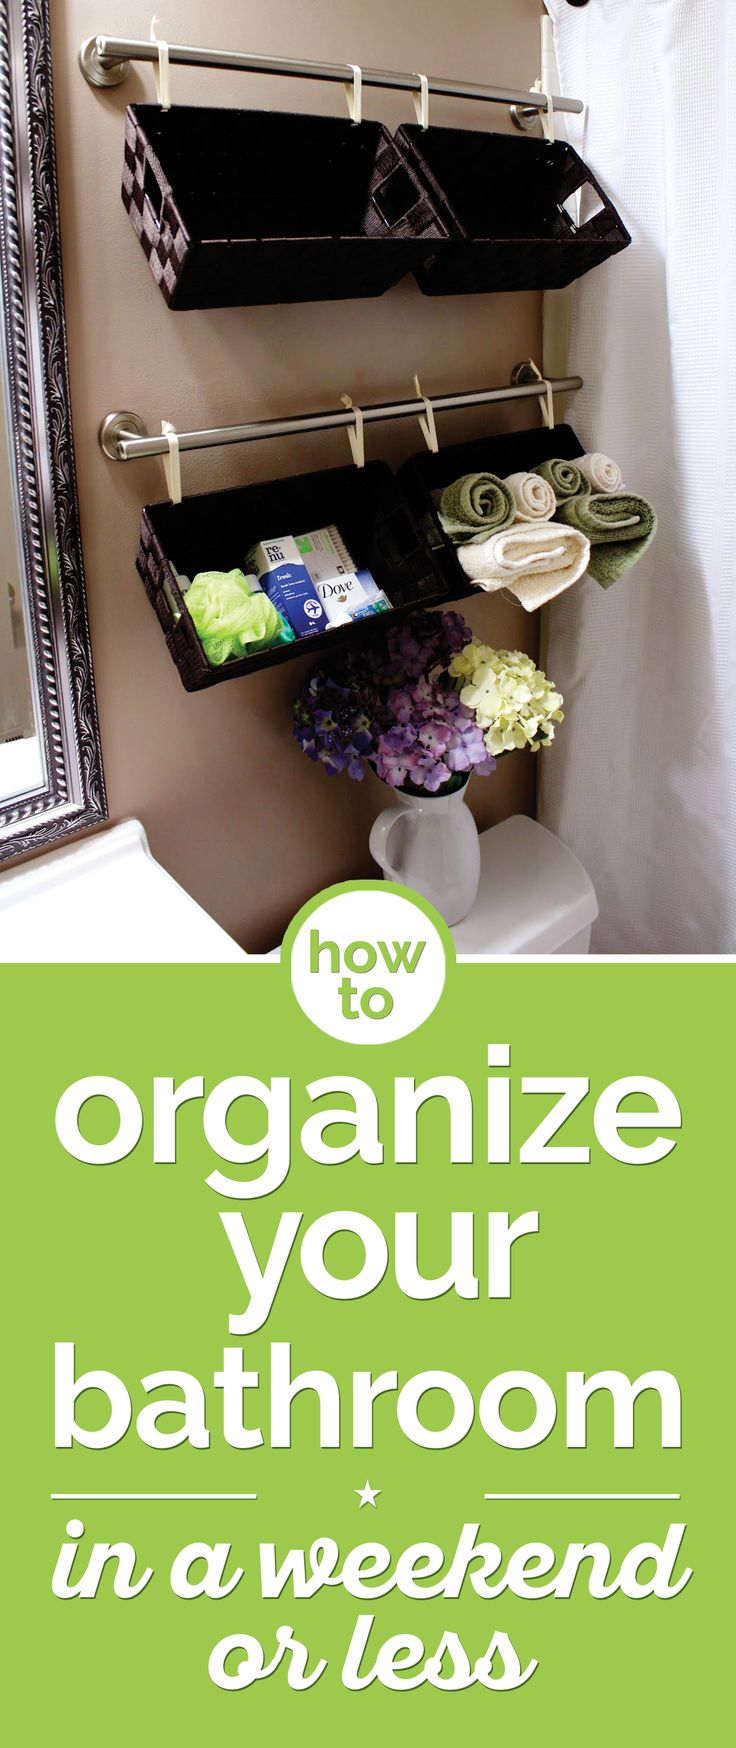 How To Organize Your Bathroom In A Weekend Or Less Shops How To Organize And Bathroom